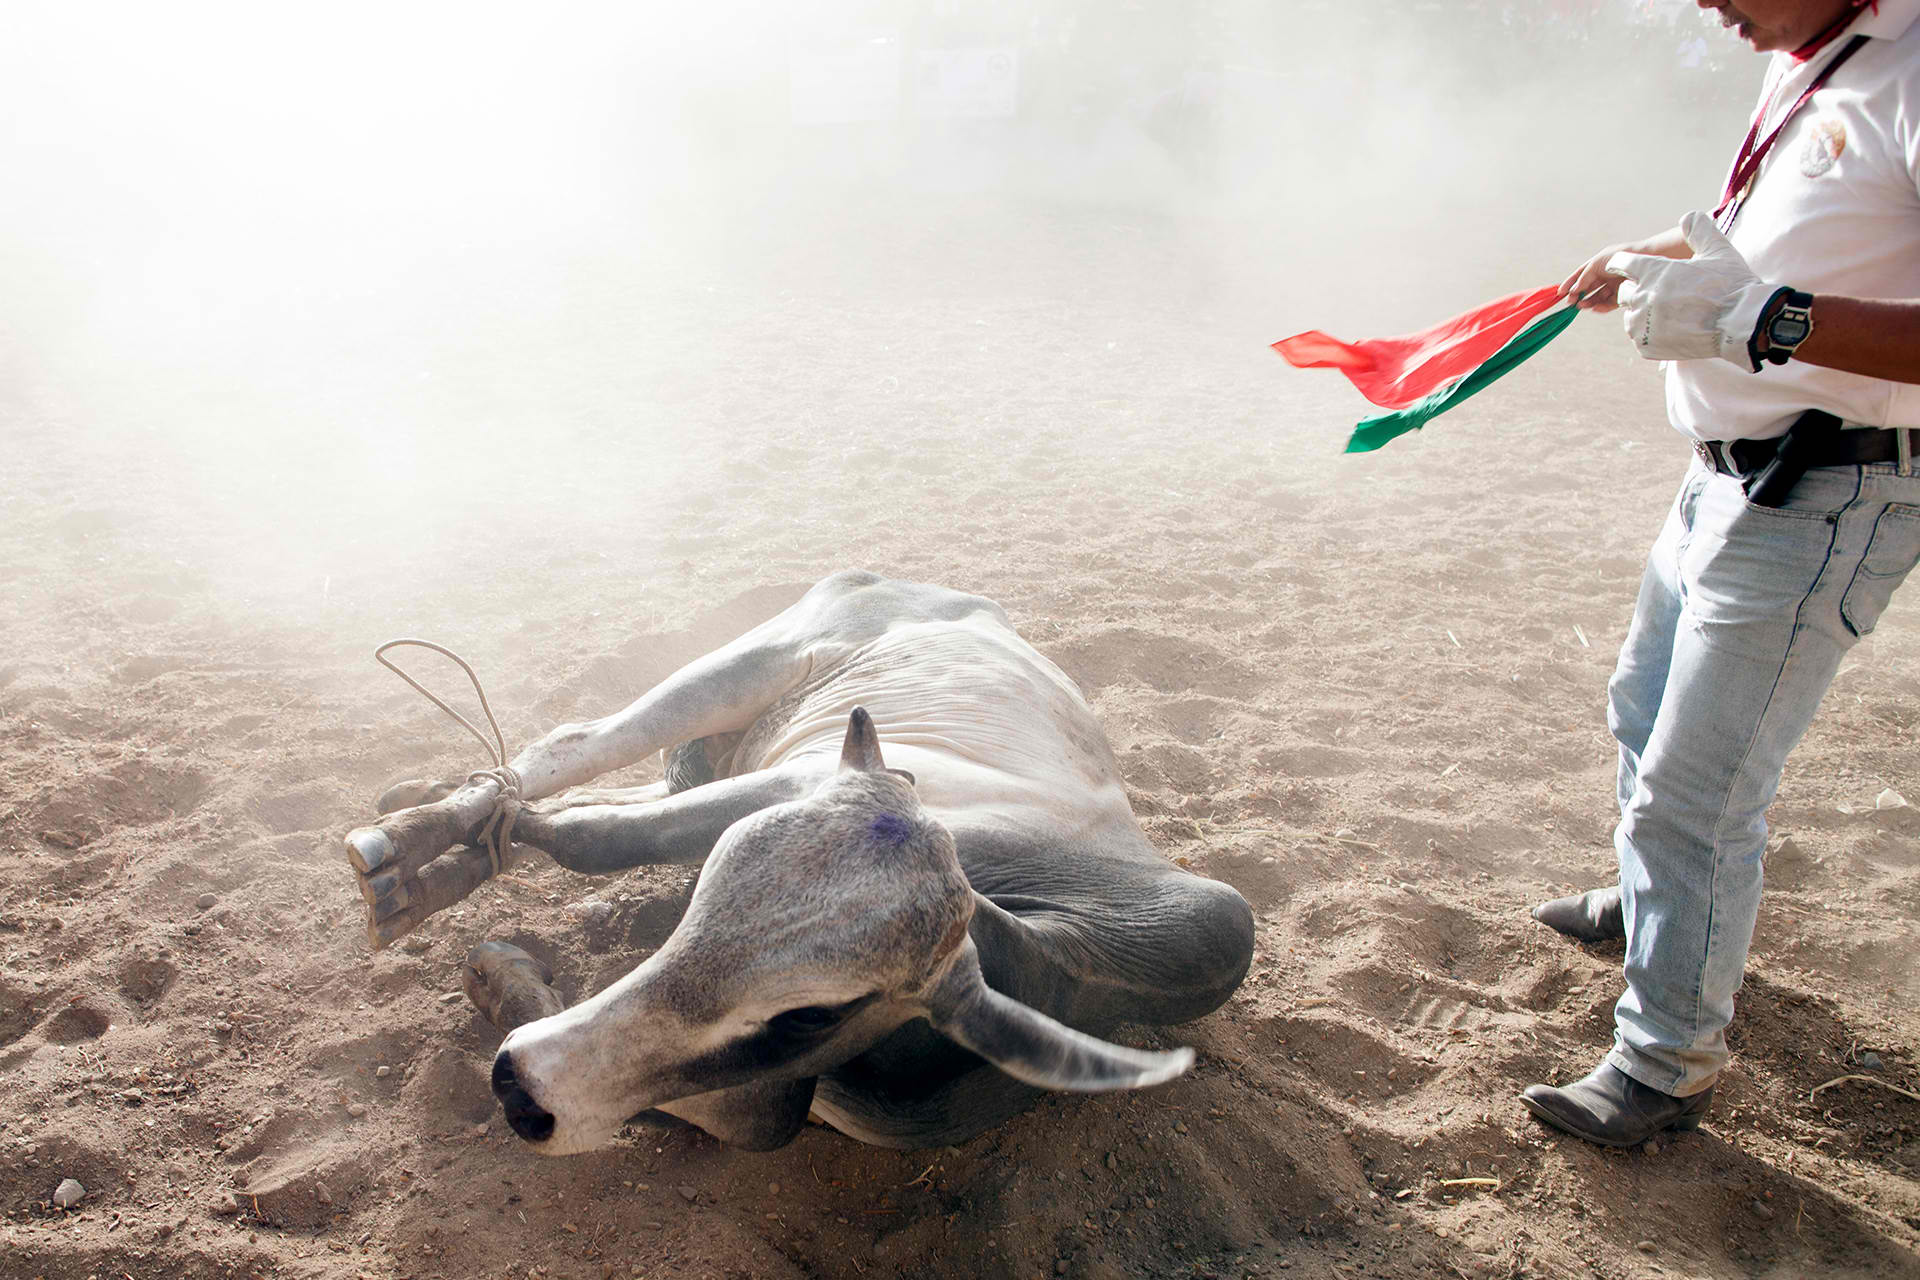 Scene from the Masbate Rodeo as a Filipino cowbo ropes a bull